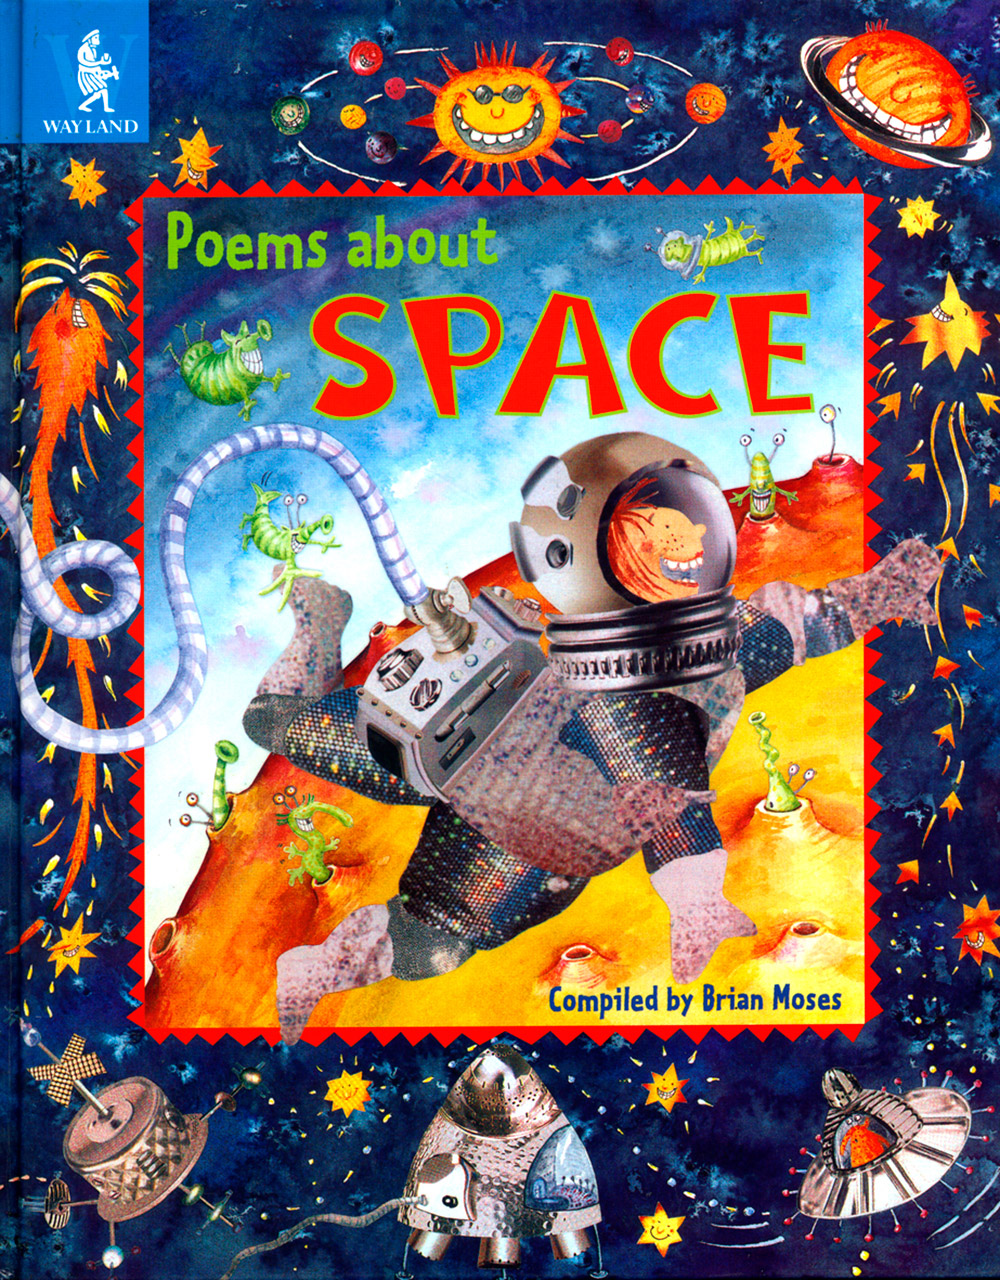 Poems about Space book cover design